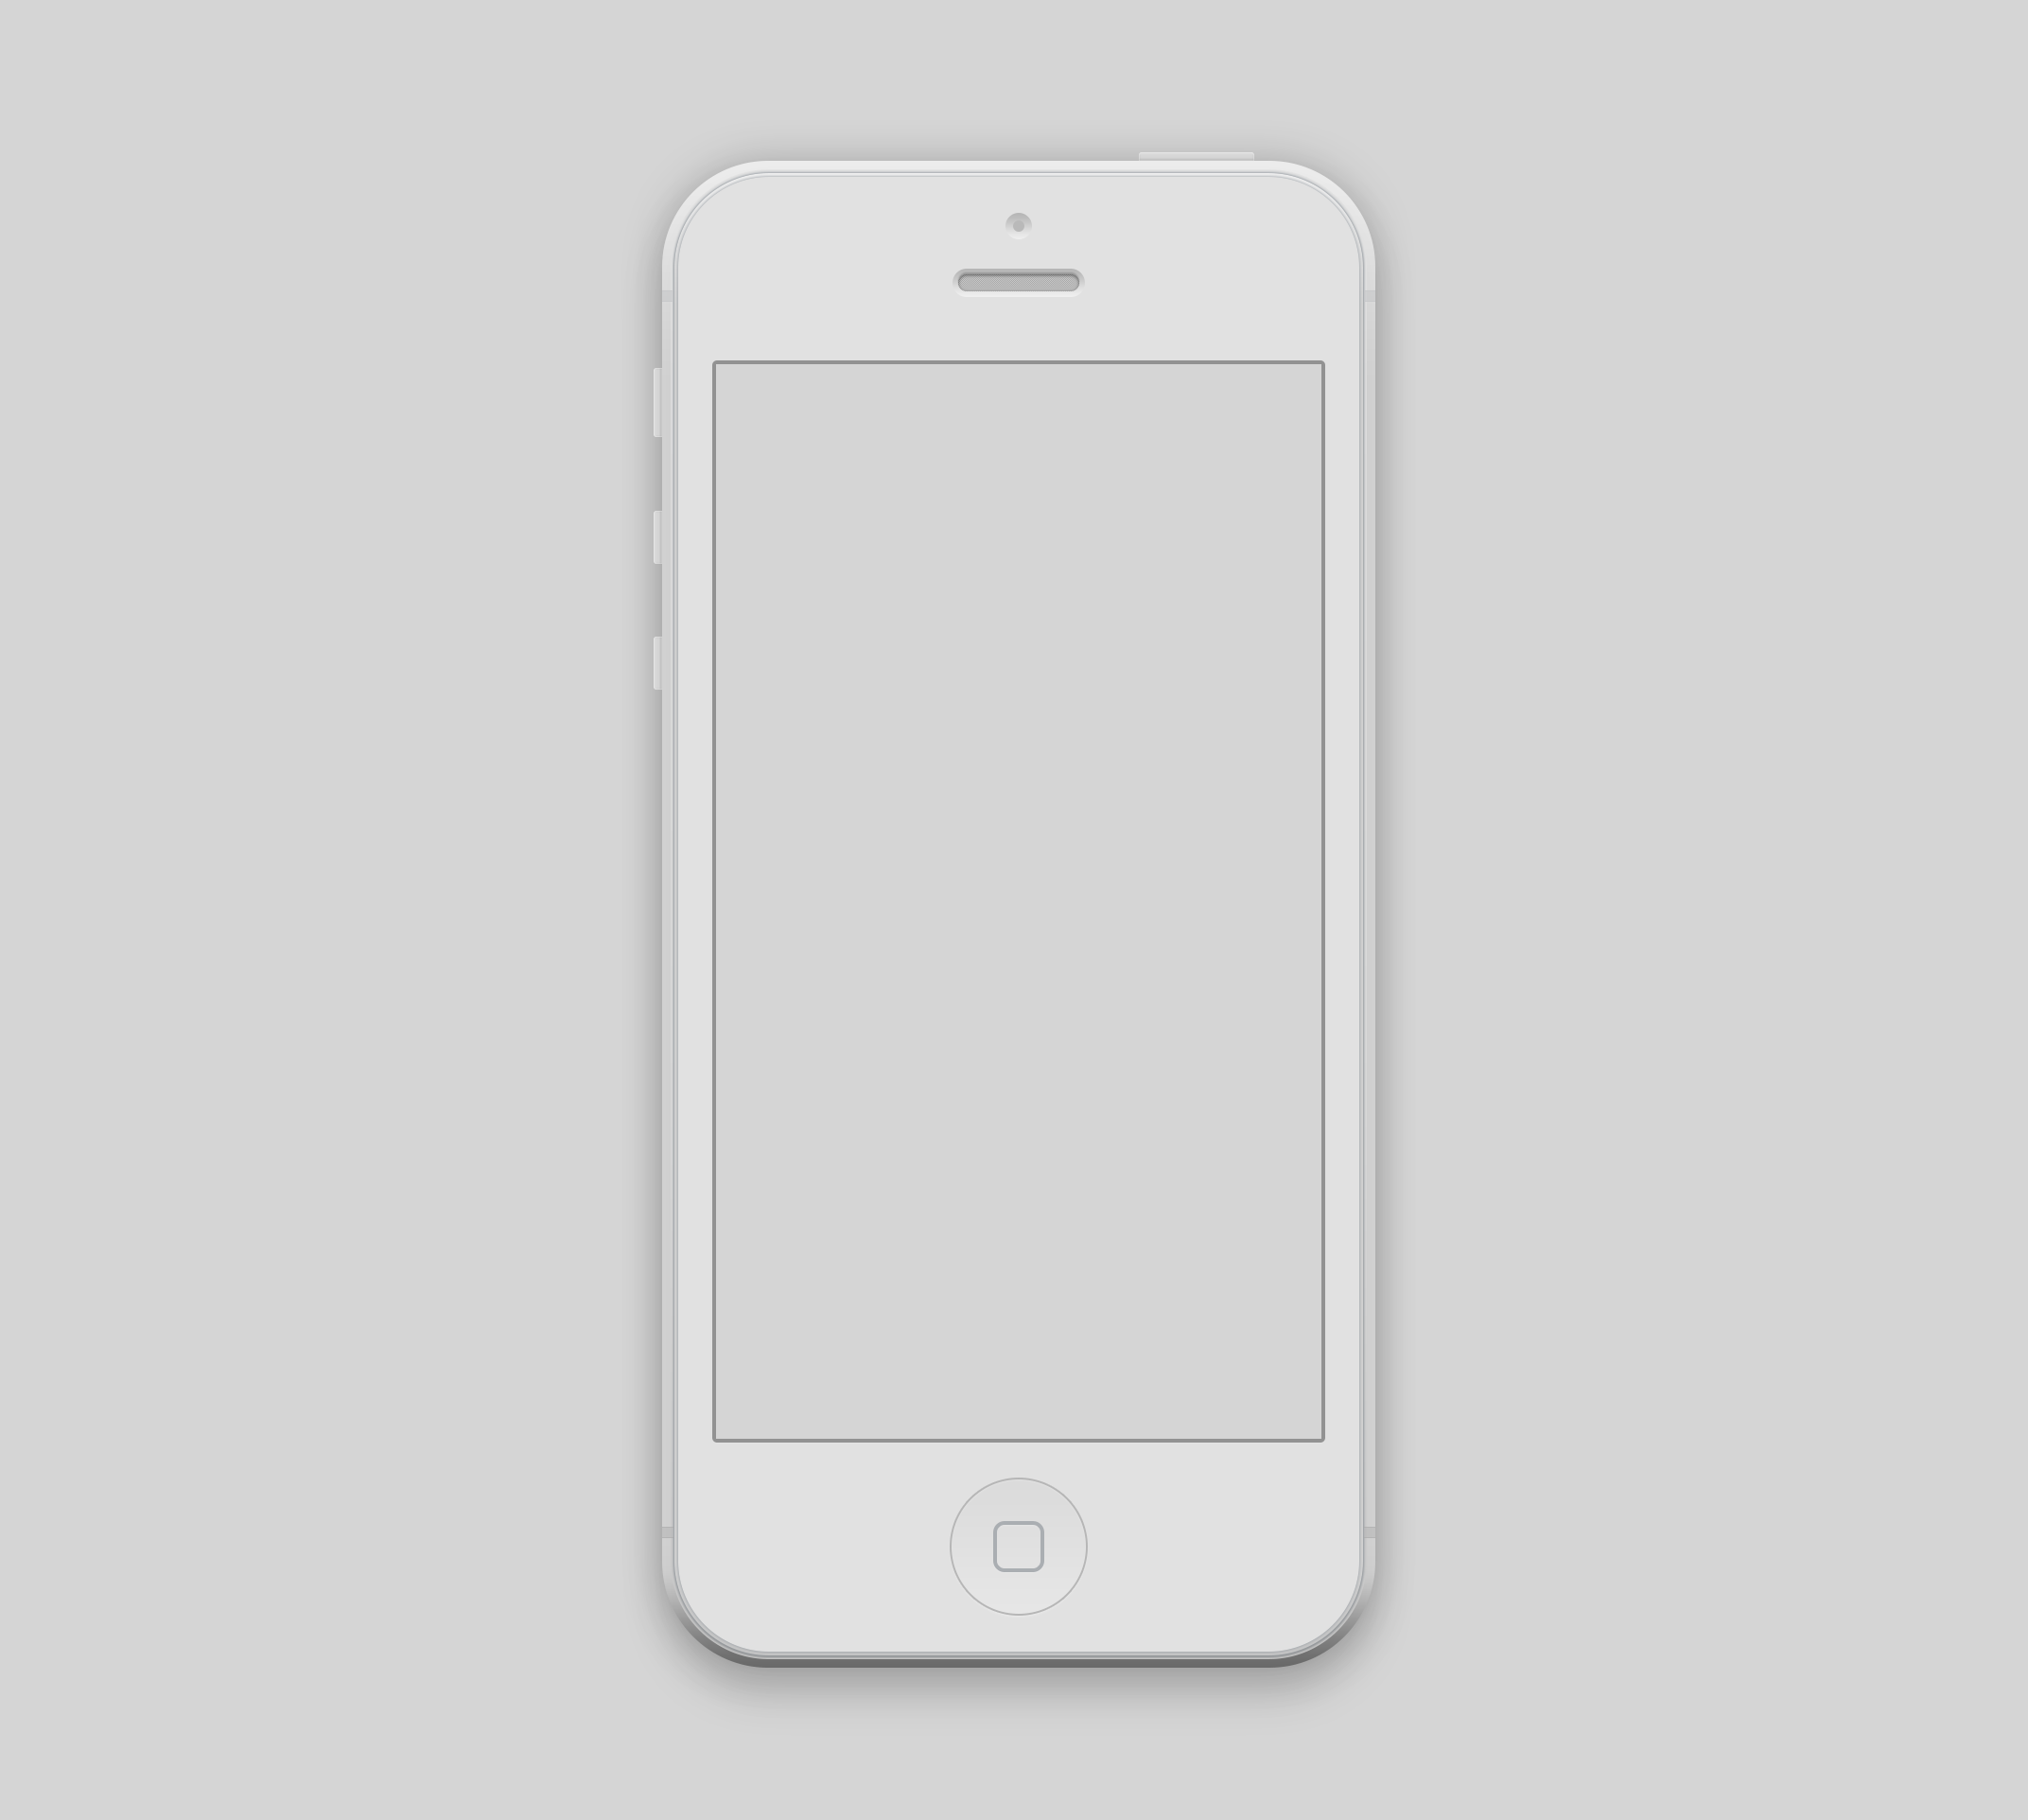 10 IPhone 5 Mockup Psd Free Images.